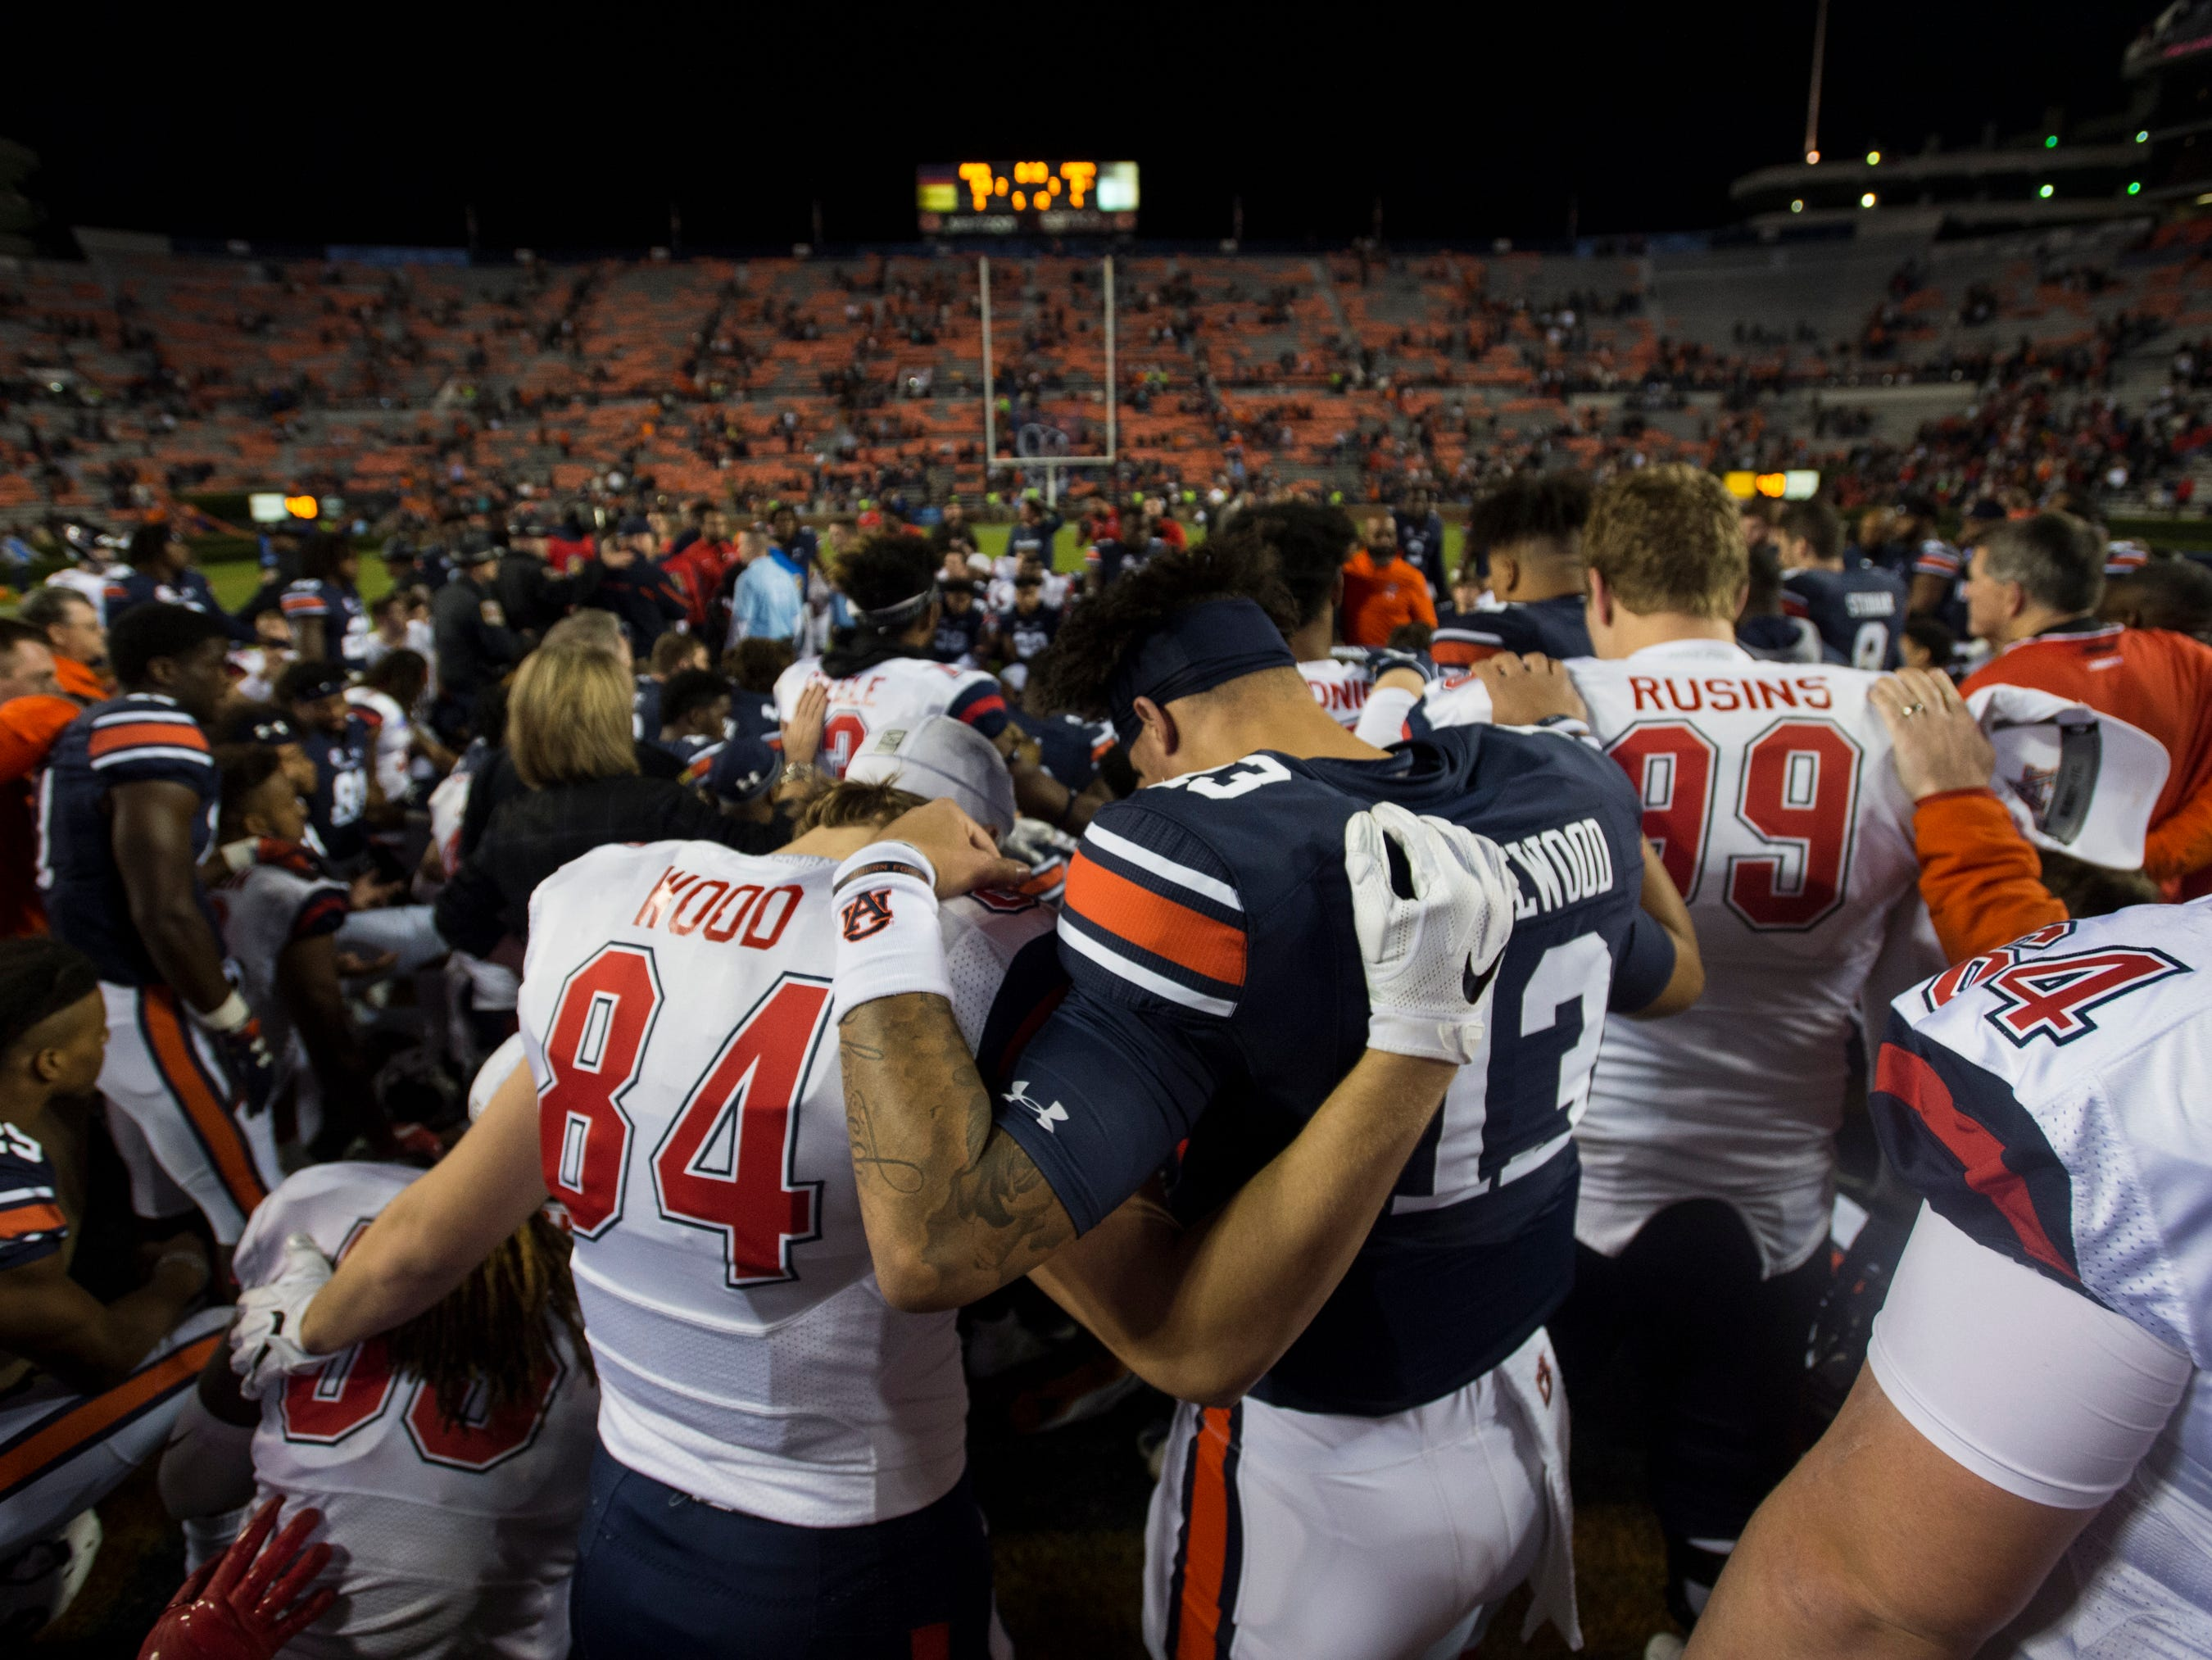 Auburn and Liberty players pray after the game at Jordan-Hare Stadium in Auburn, Ala., on Saturday, Nov.. 17, 2018. Auburn defeated Liberty 53-0.